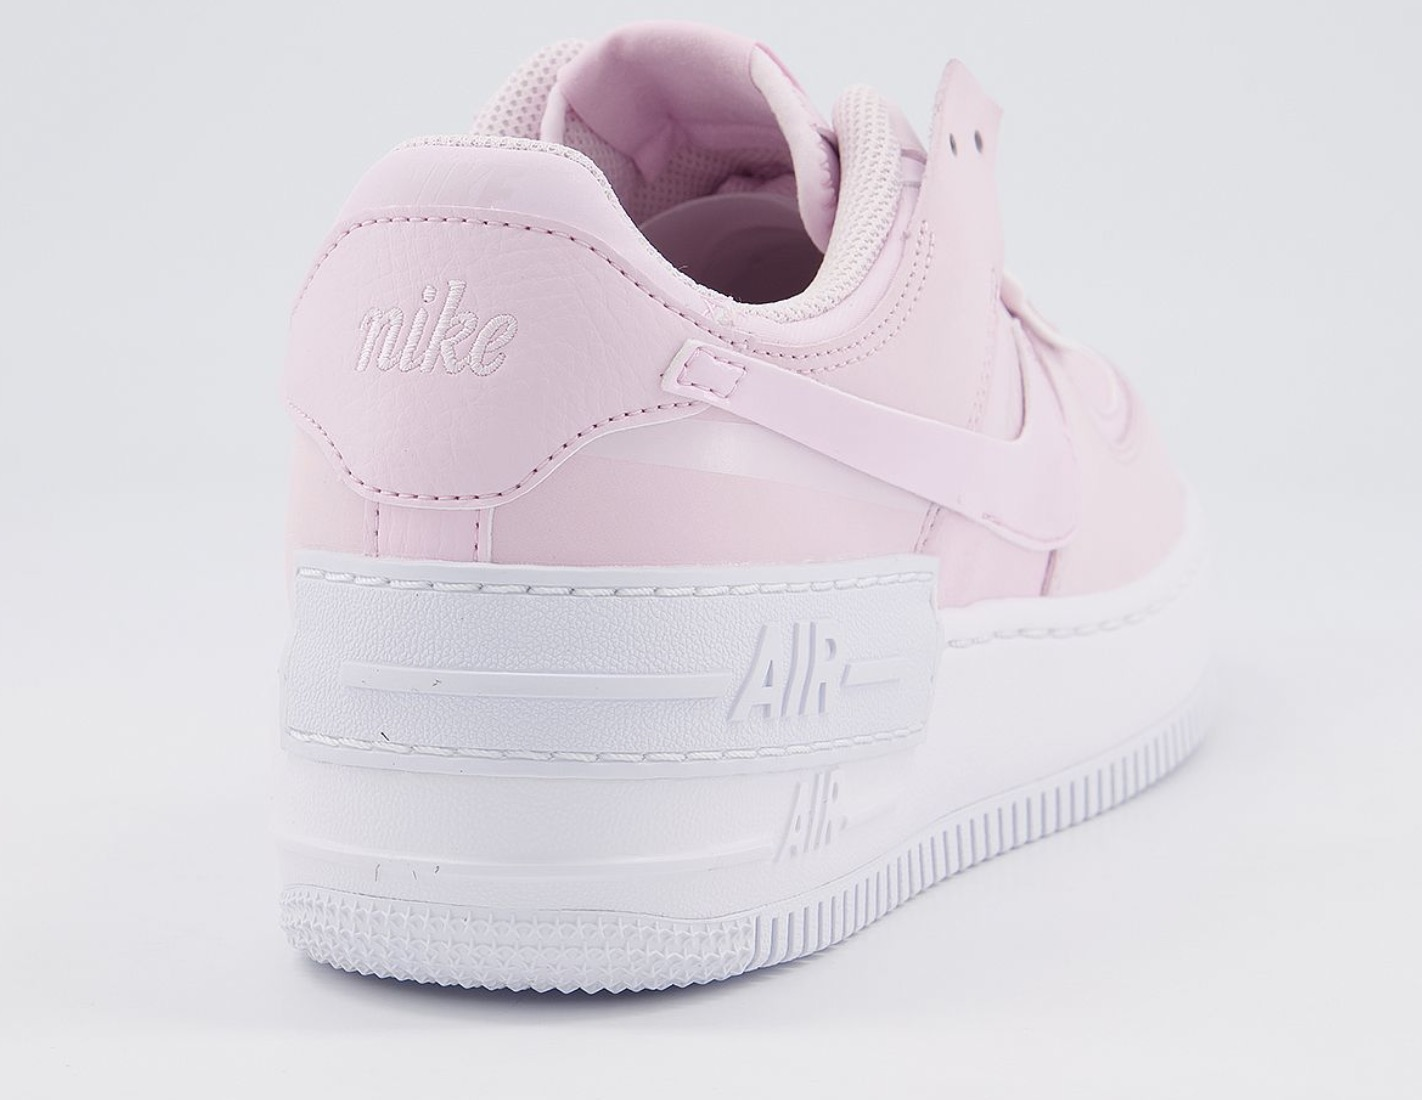 The Dreamiest Air Force 1 Shadow Has Arrived In Pink Foam Style Guides The Sole Womens